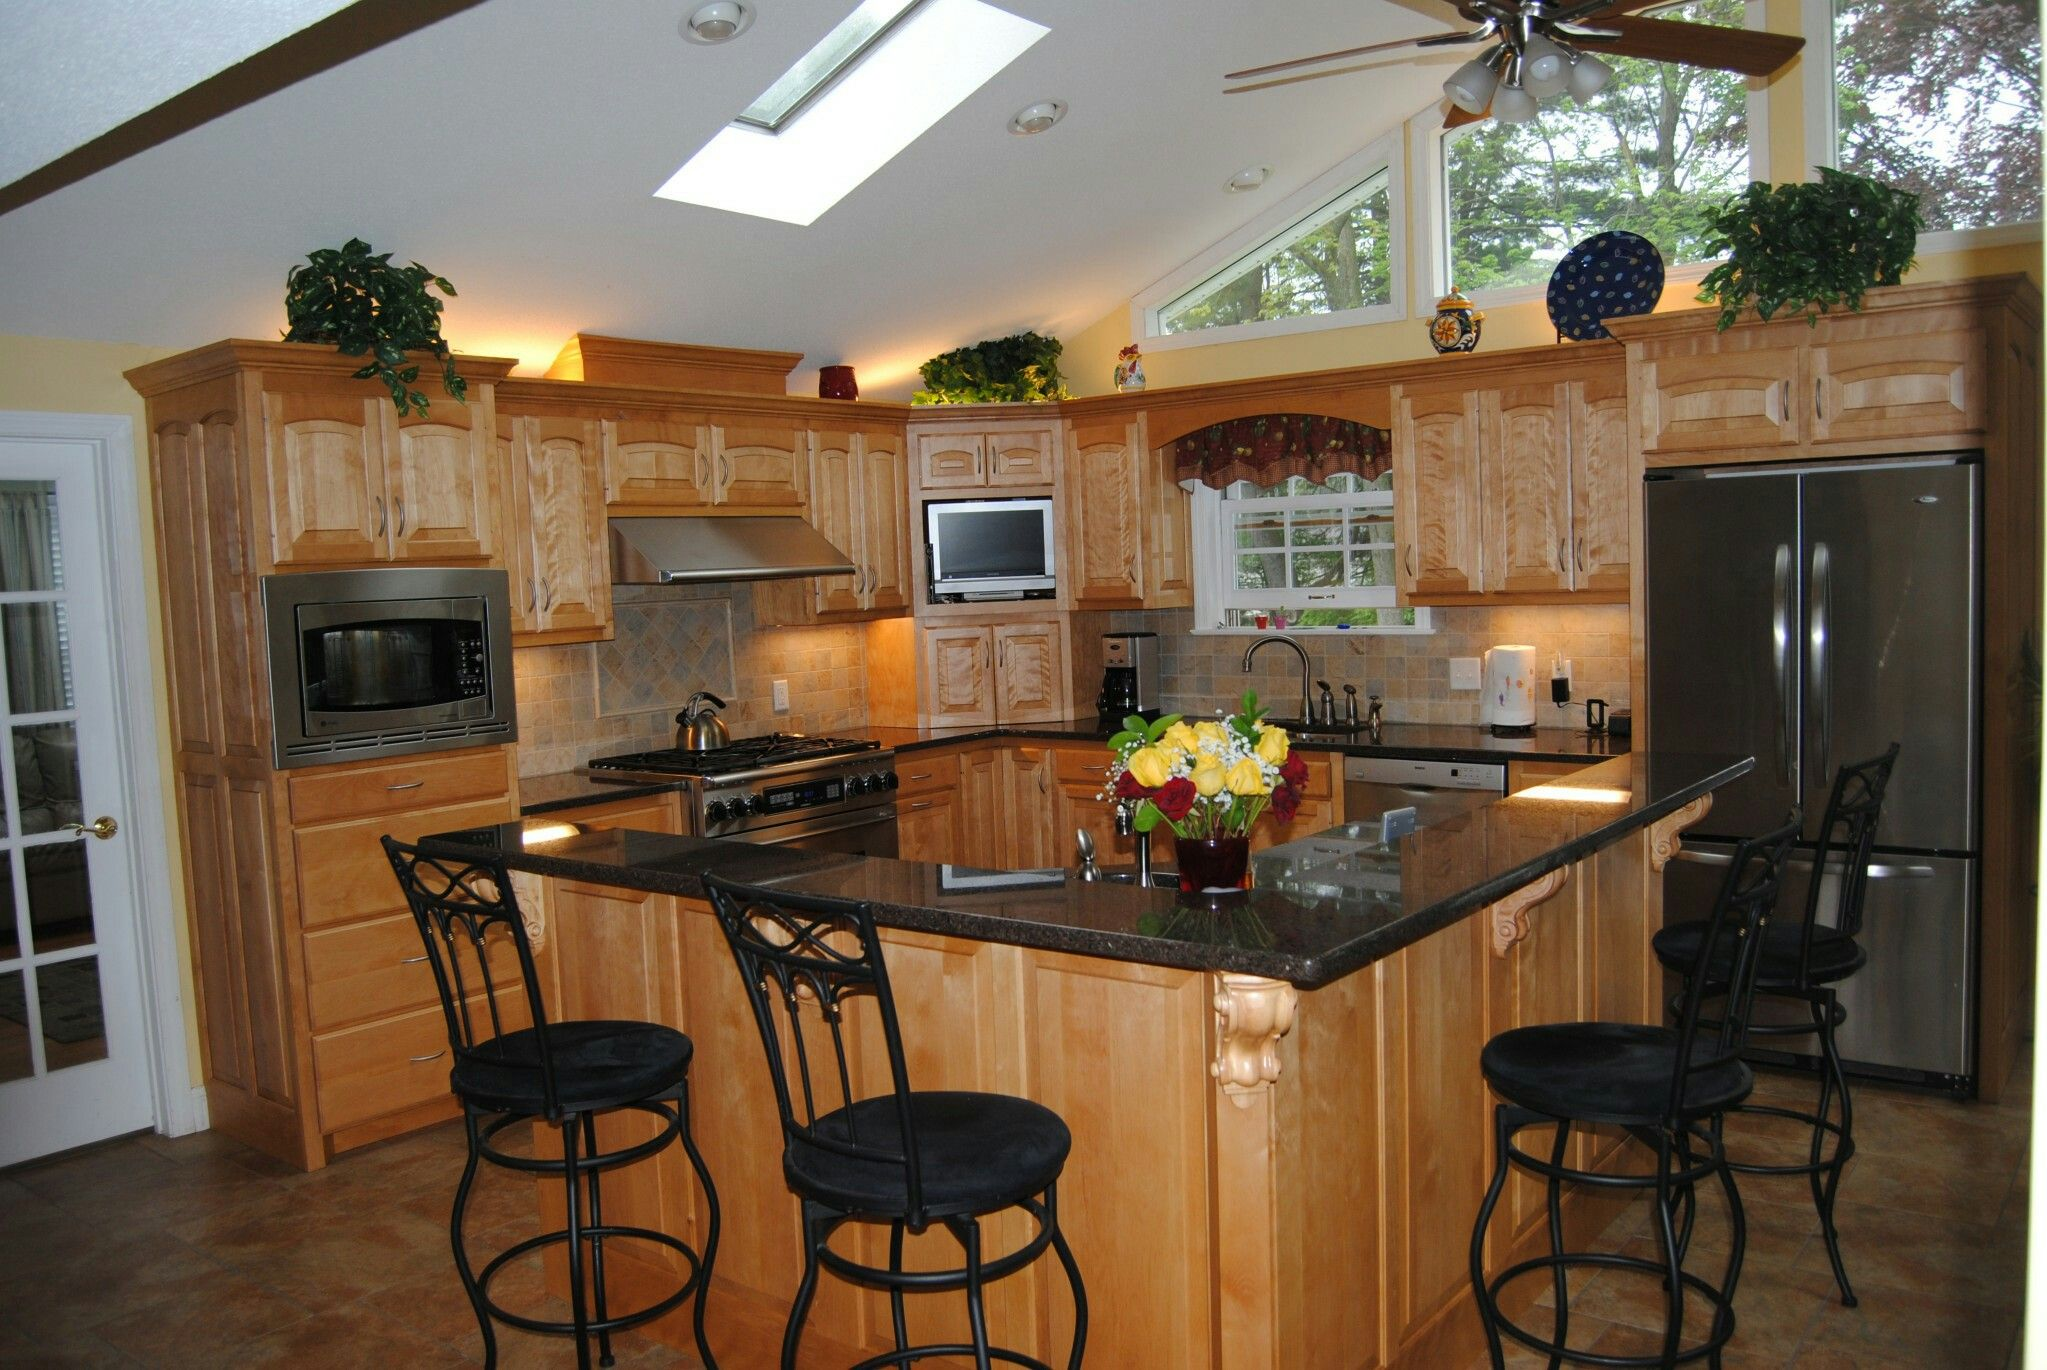 pin by tiffany brase on kitchens cheap kitchen remodel kitchen island designs with seating on kitchen island ideas cheap id=32260